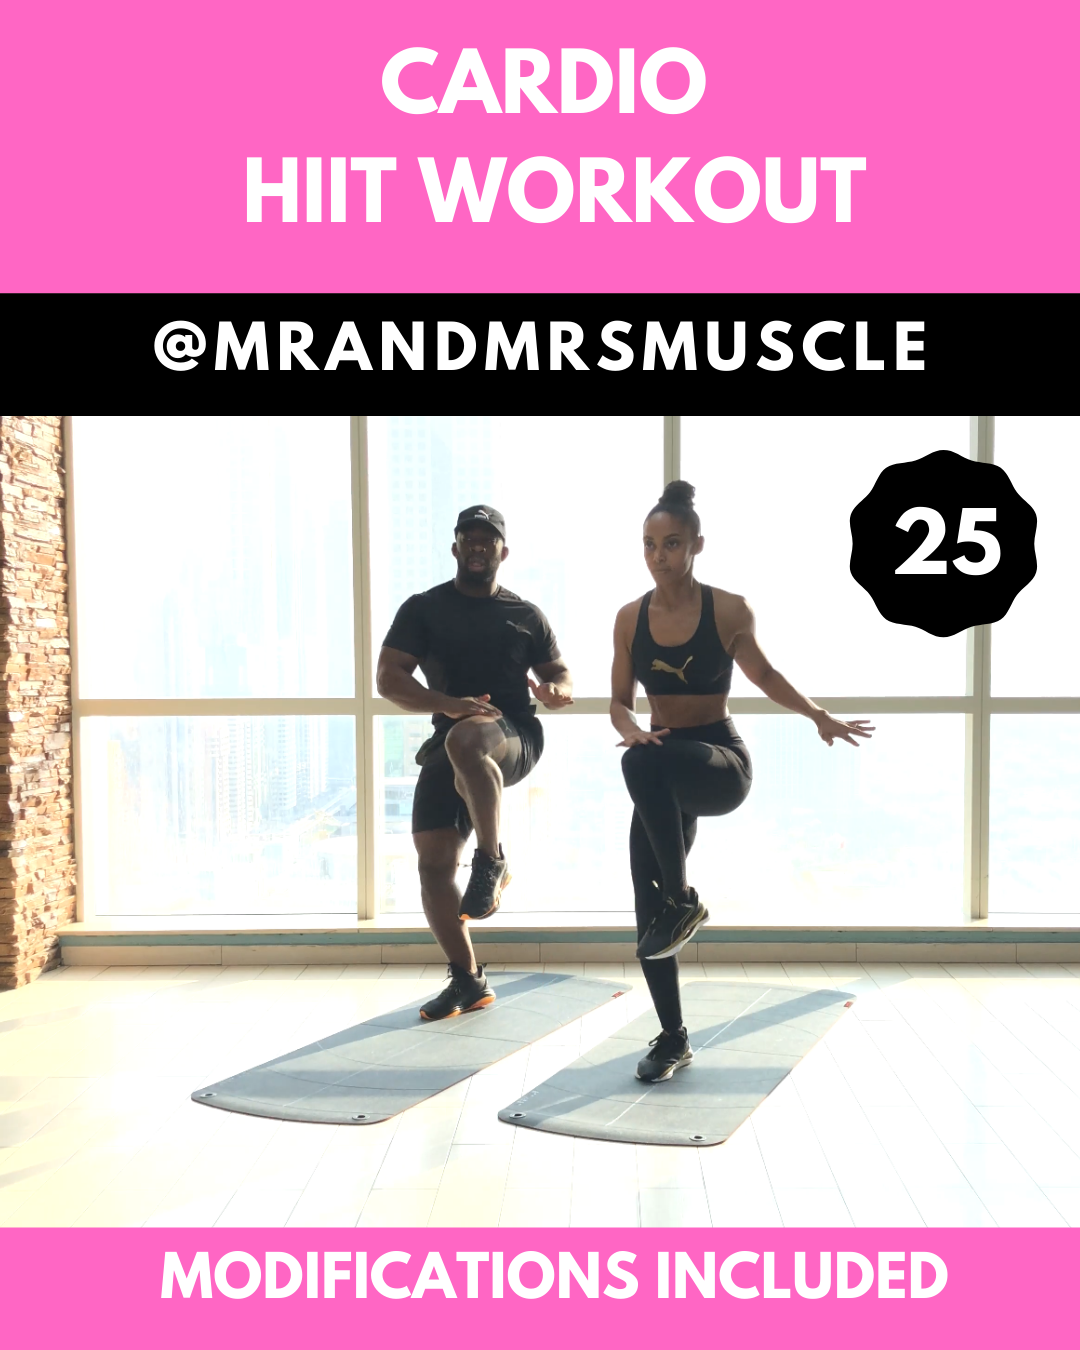 Cardio HIIT Workout - modifications included #cardioyoga